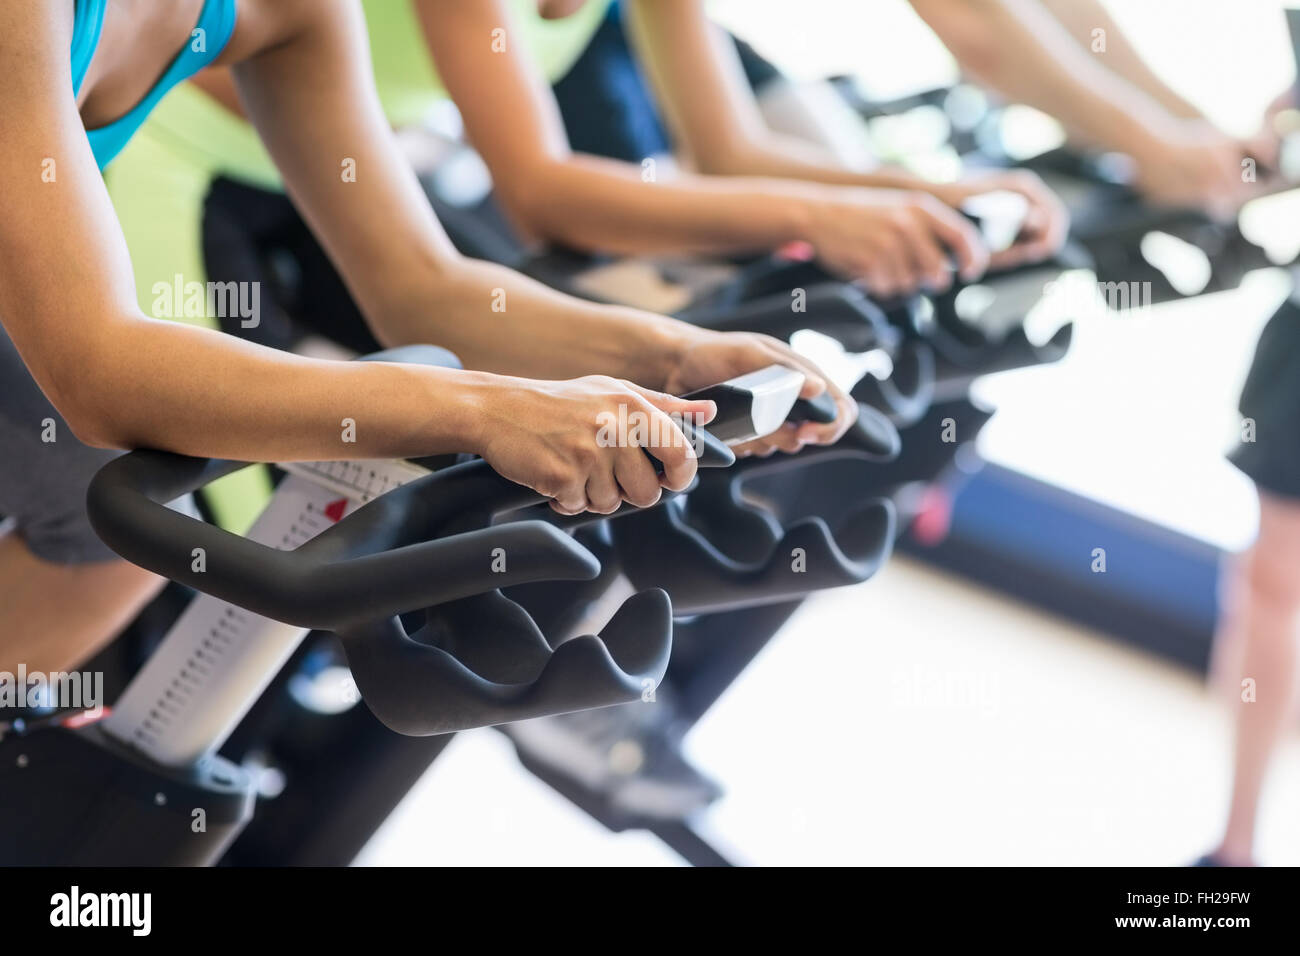 Fit people in a spin class - Stock Image